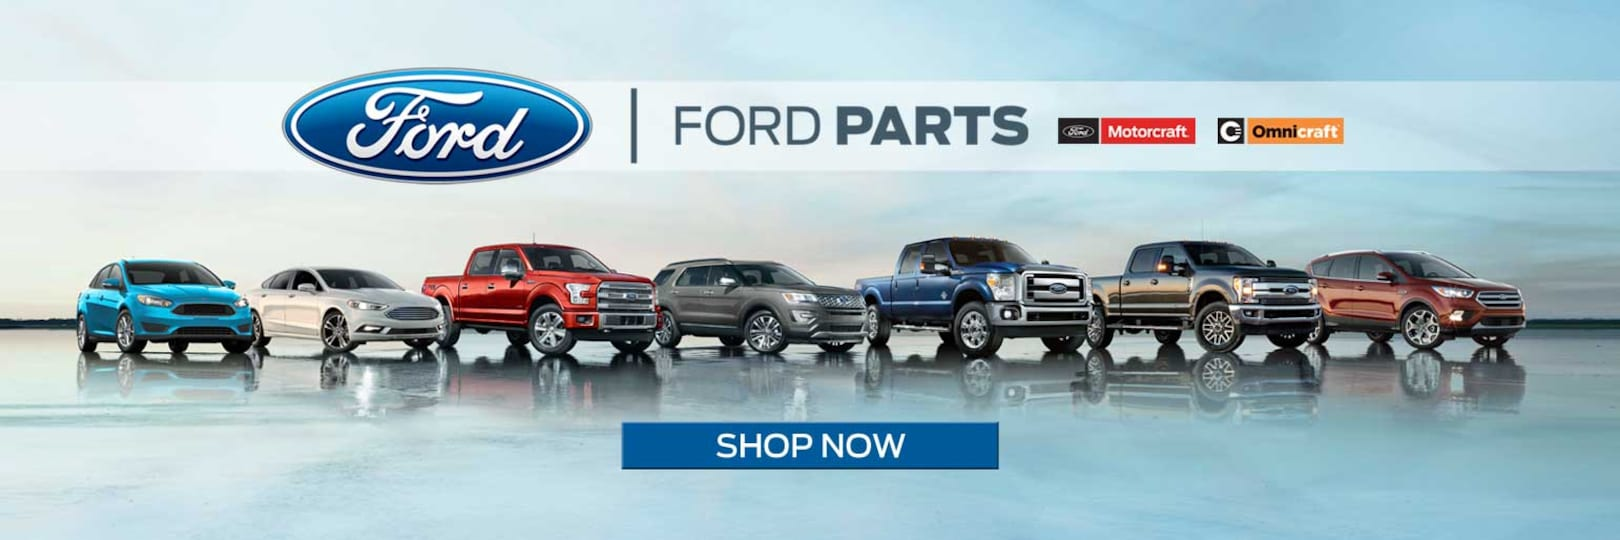 BobBoyd Ford Inc Ford Dealership In Lancaster OH - Lancaster ohio car show 2018